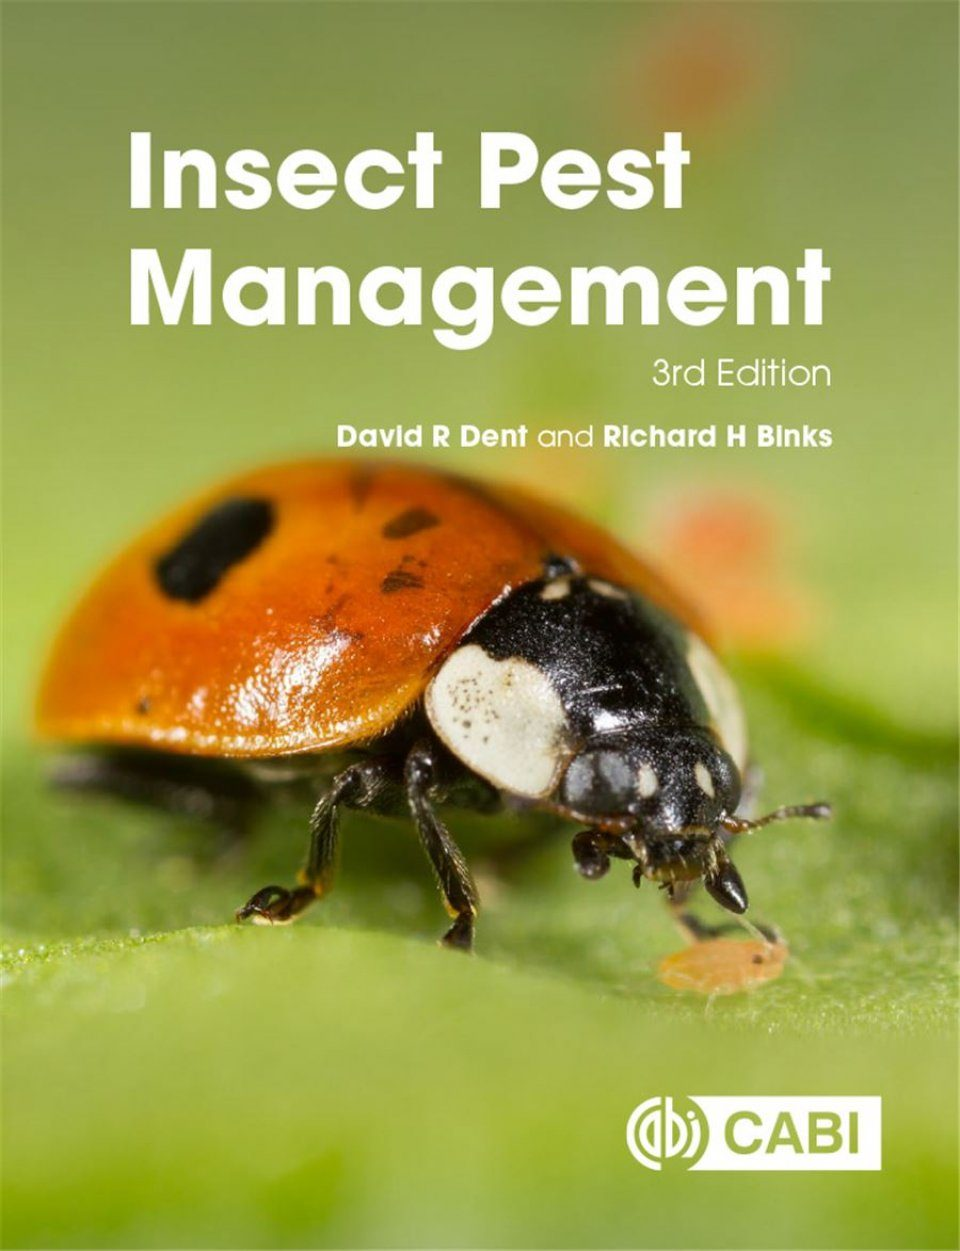 Insect Pest Management